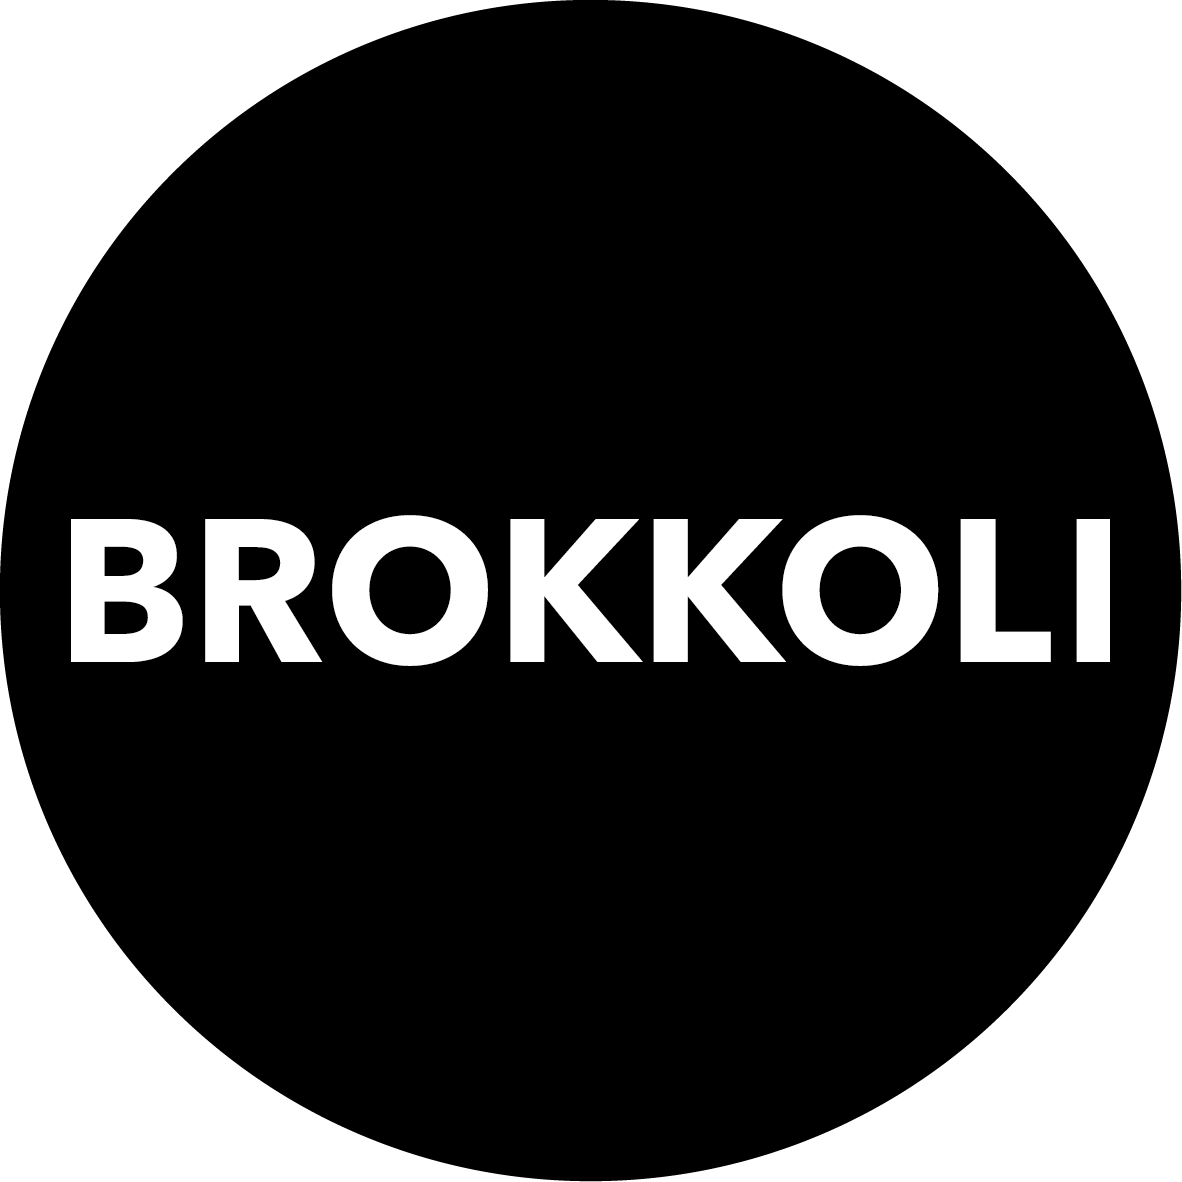 Brokkoli Advertising Network GmbH &Co KG